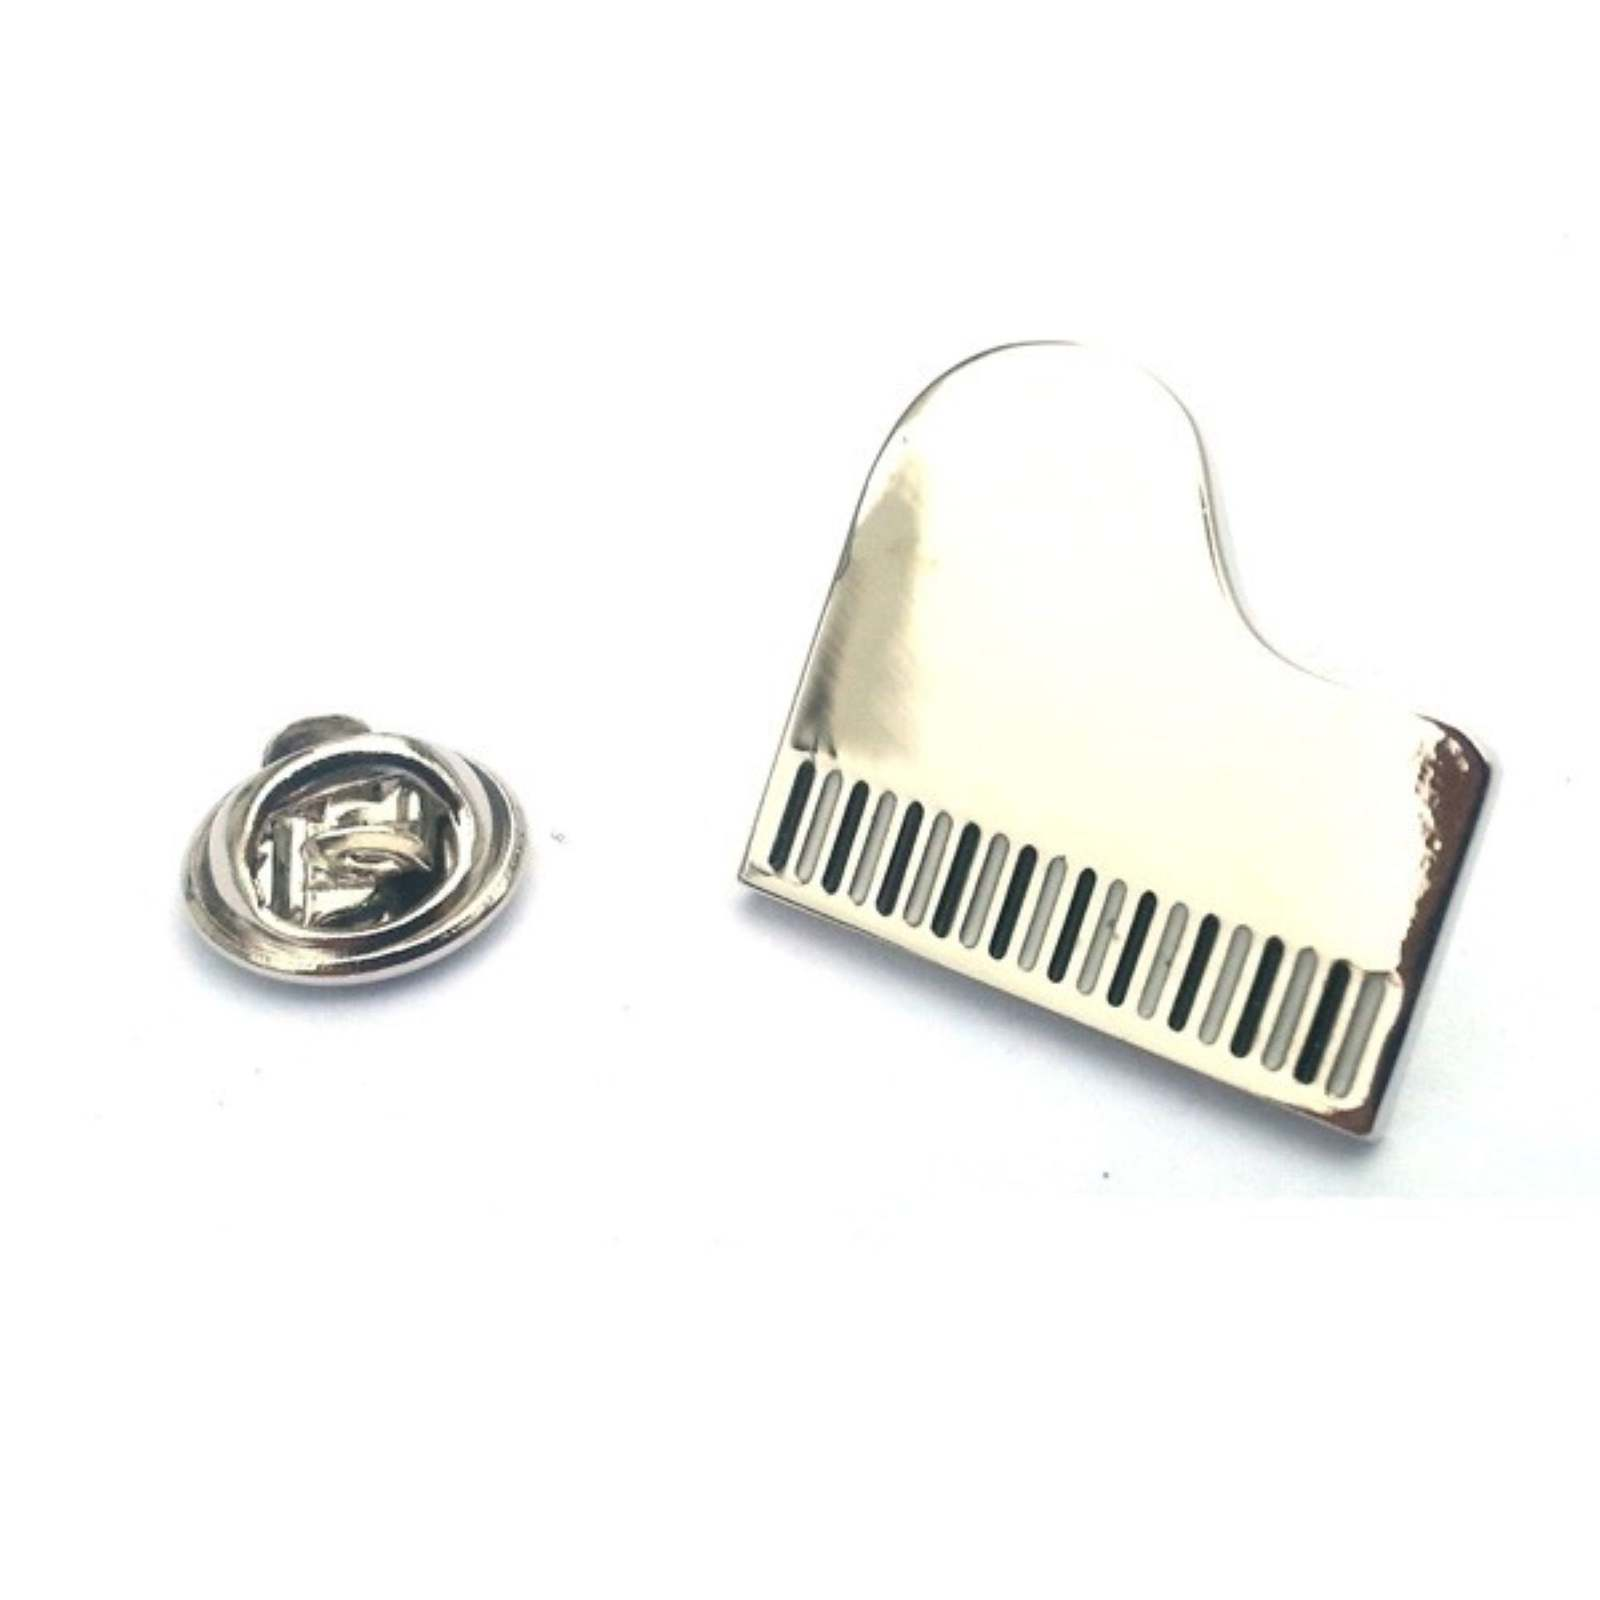 Grand Piano silver plated enamel finish tie pin, Lapel Pin Badge, in gift box